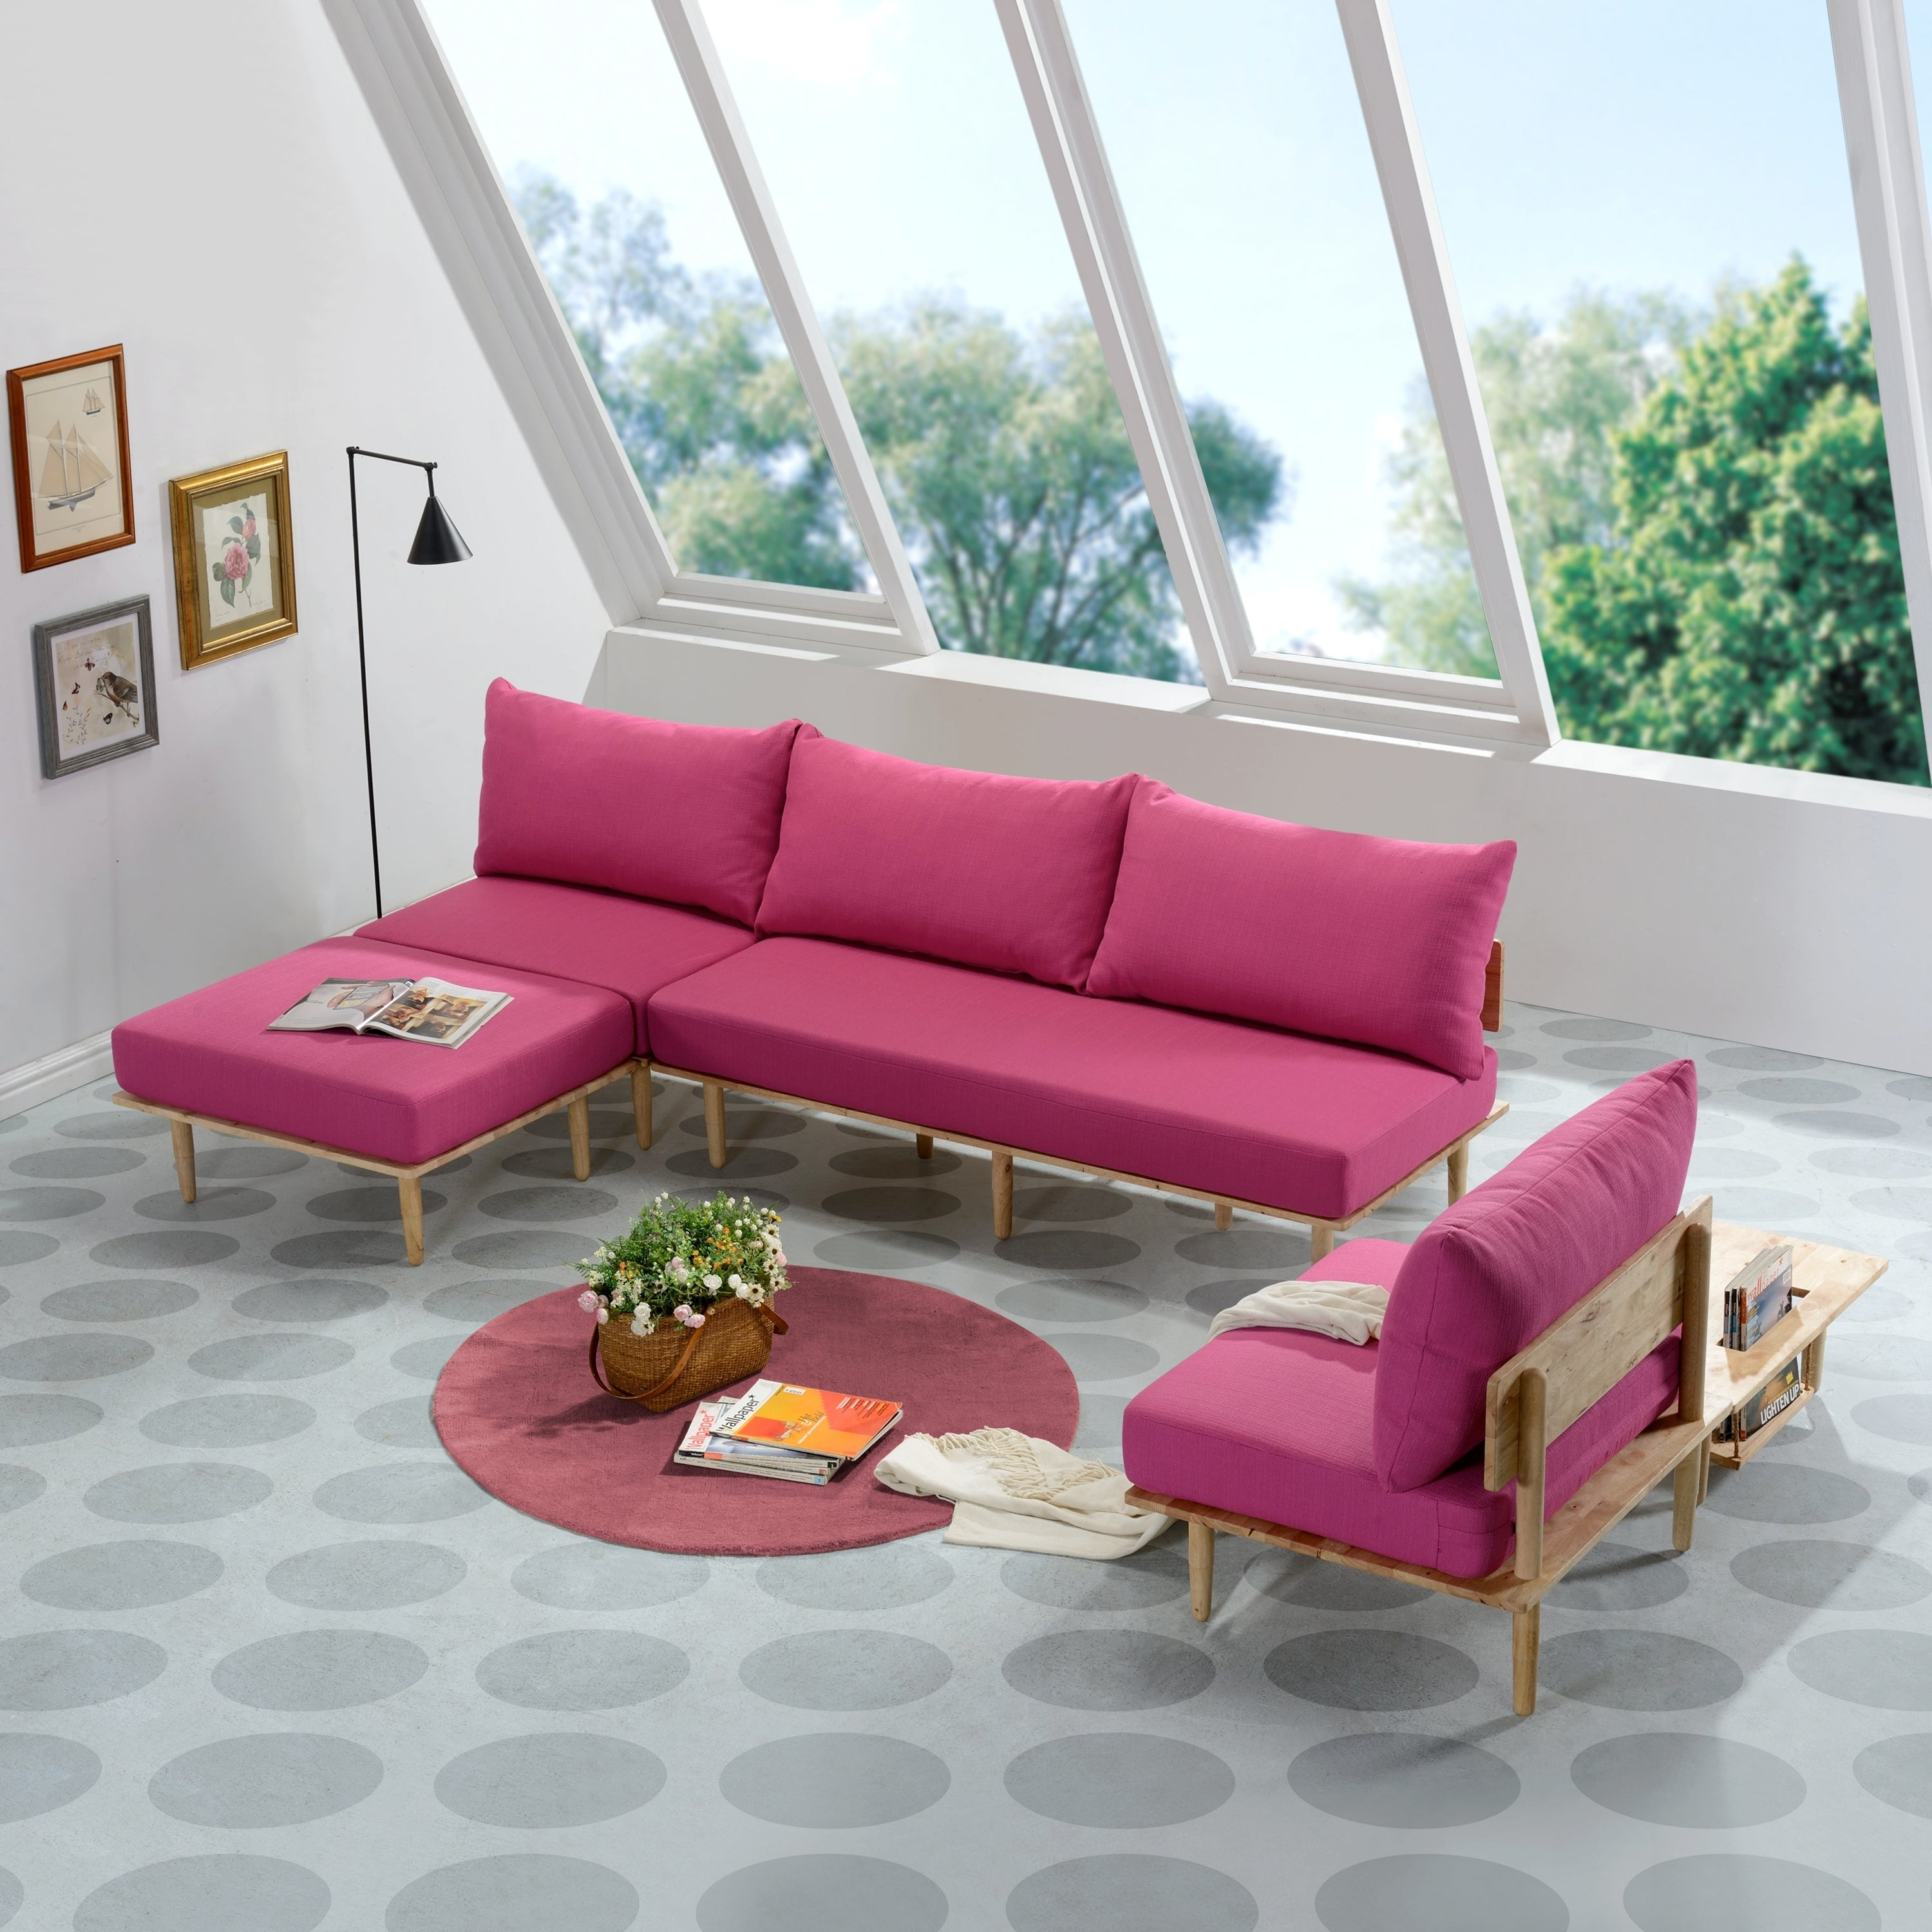 Handy Living Fundamentals 5 Piece Fuchsia Pink Linen Room Set On Free Shipping Today 22807018